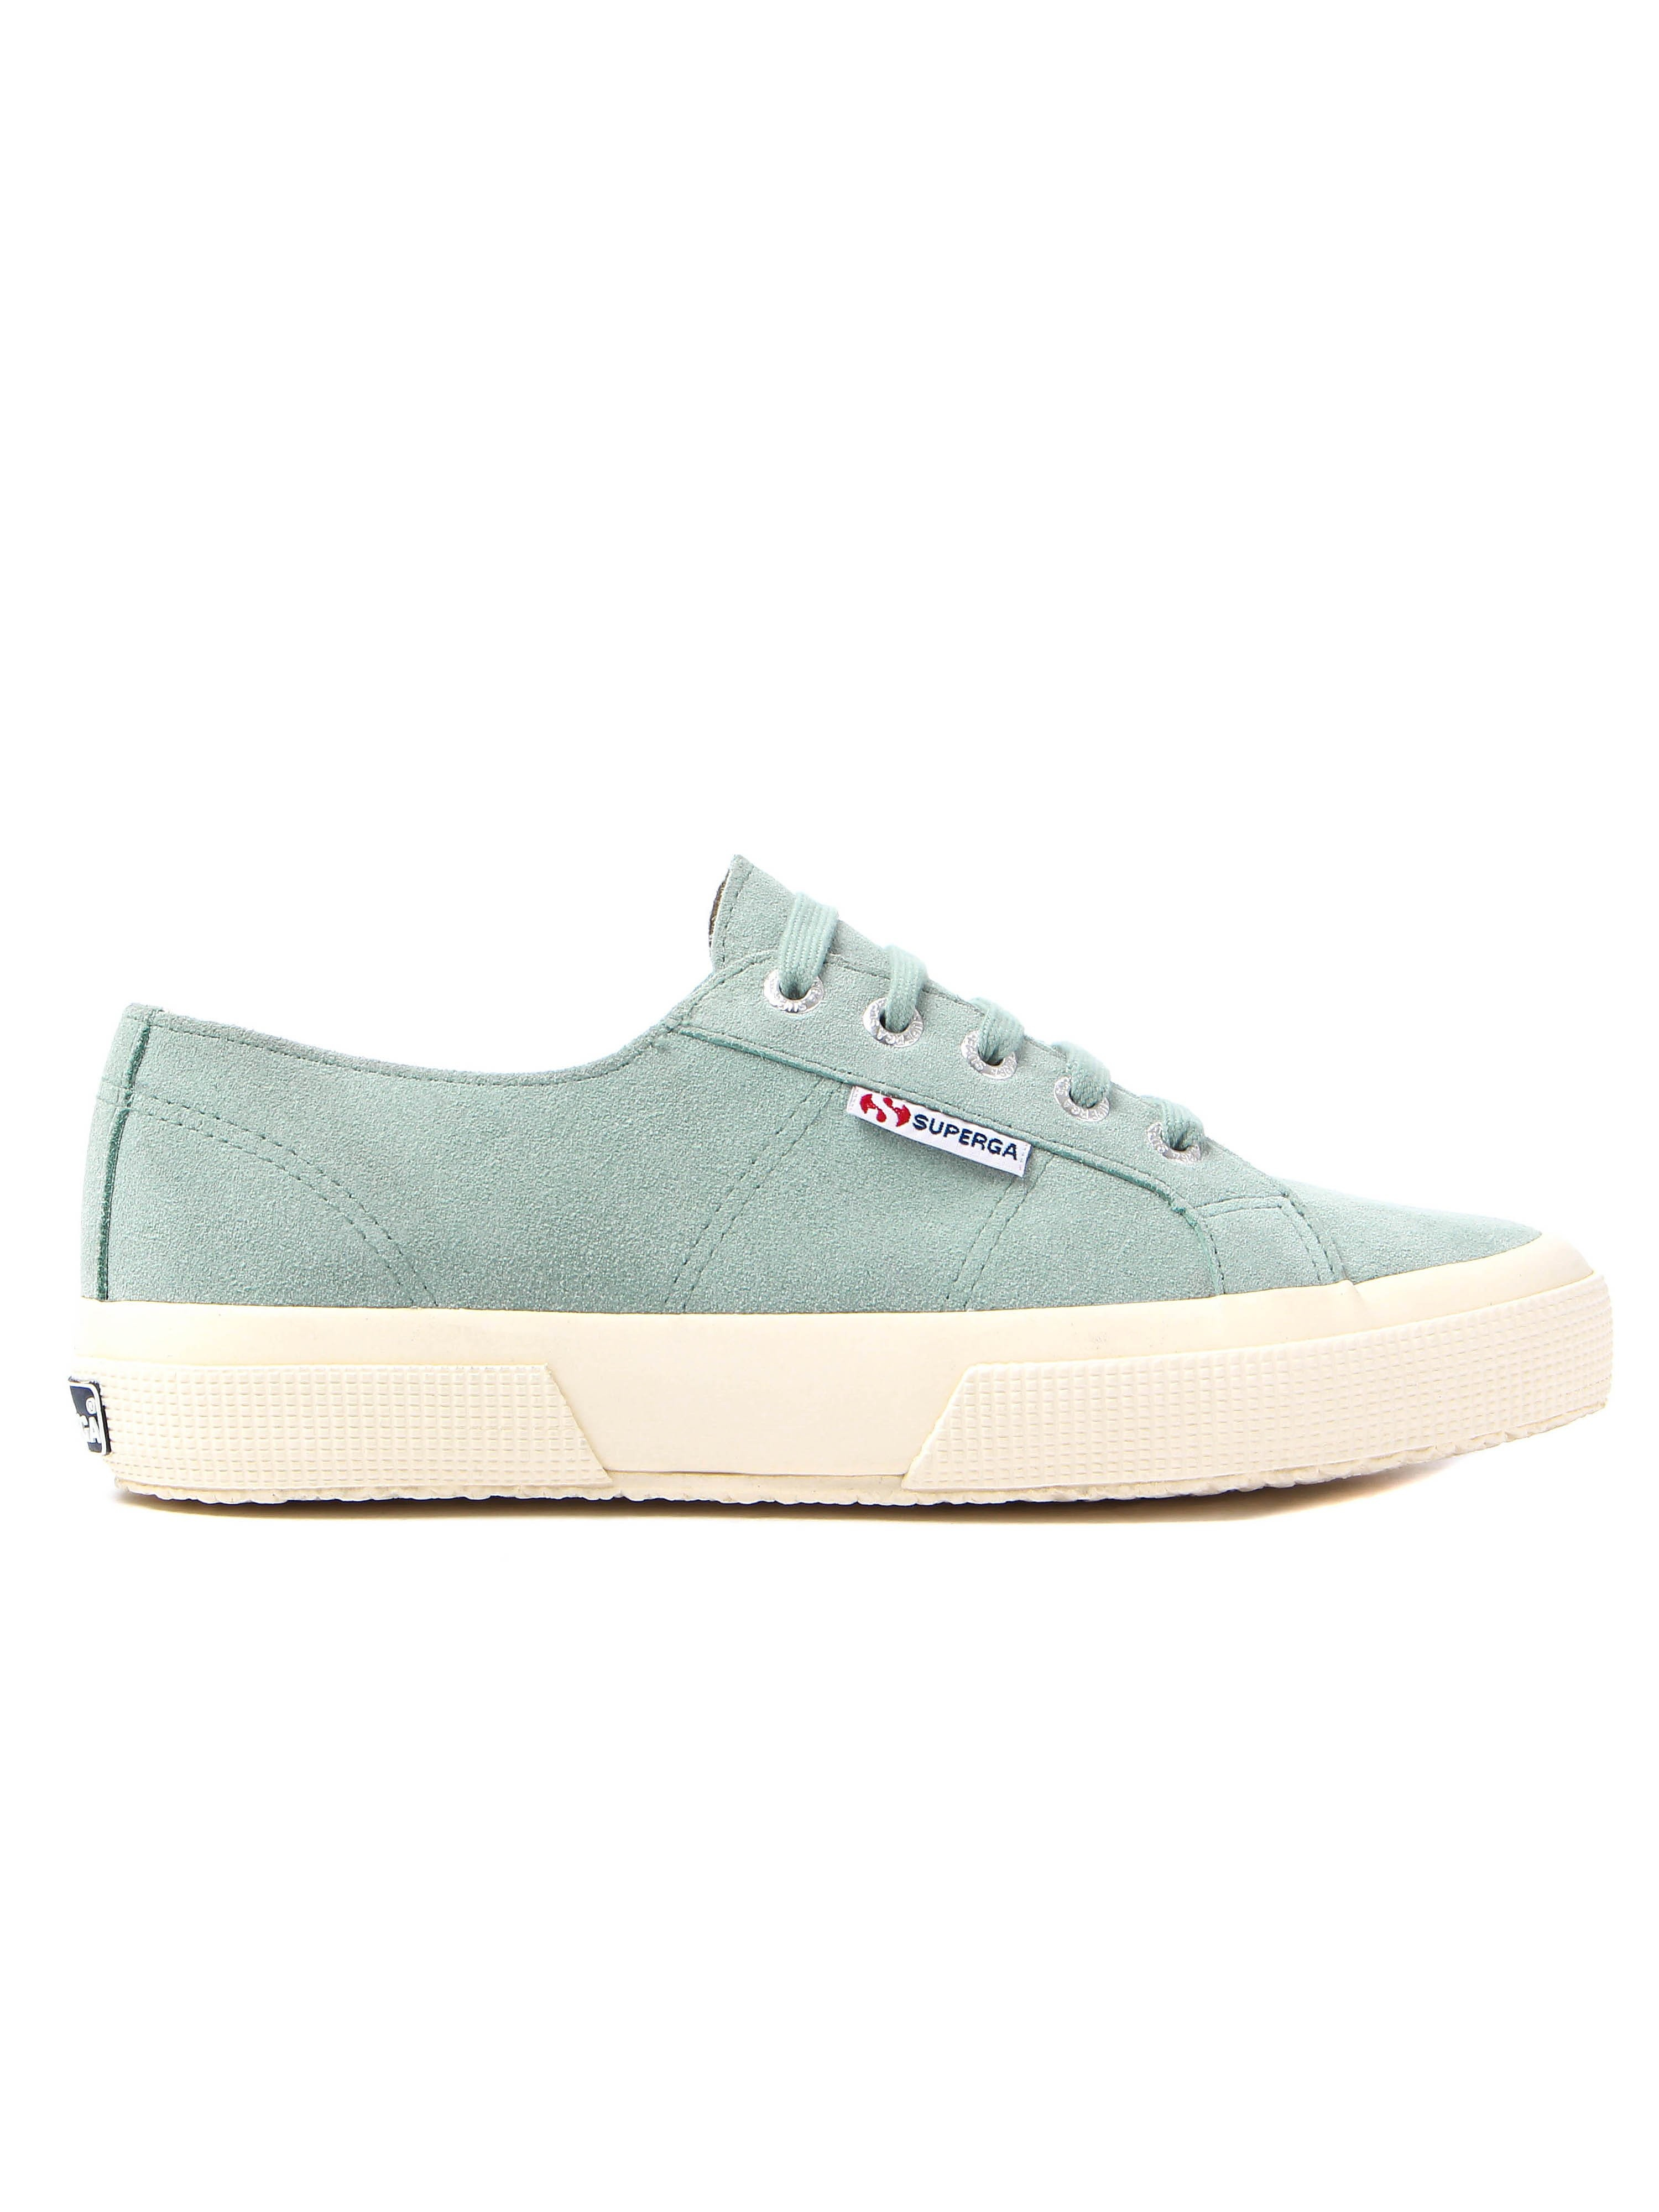 Superga Women's 2750 Sueu Trainers –Sage Green Suede